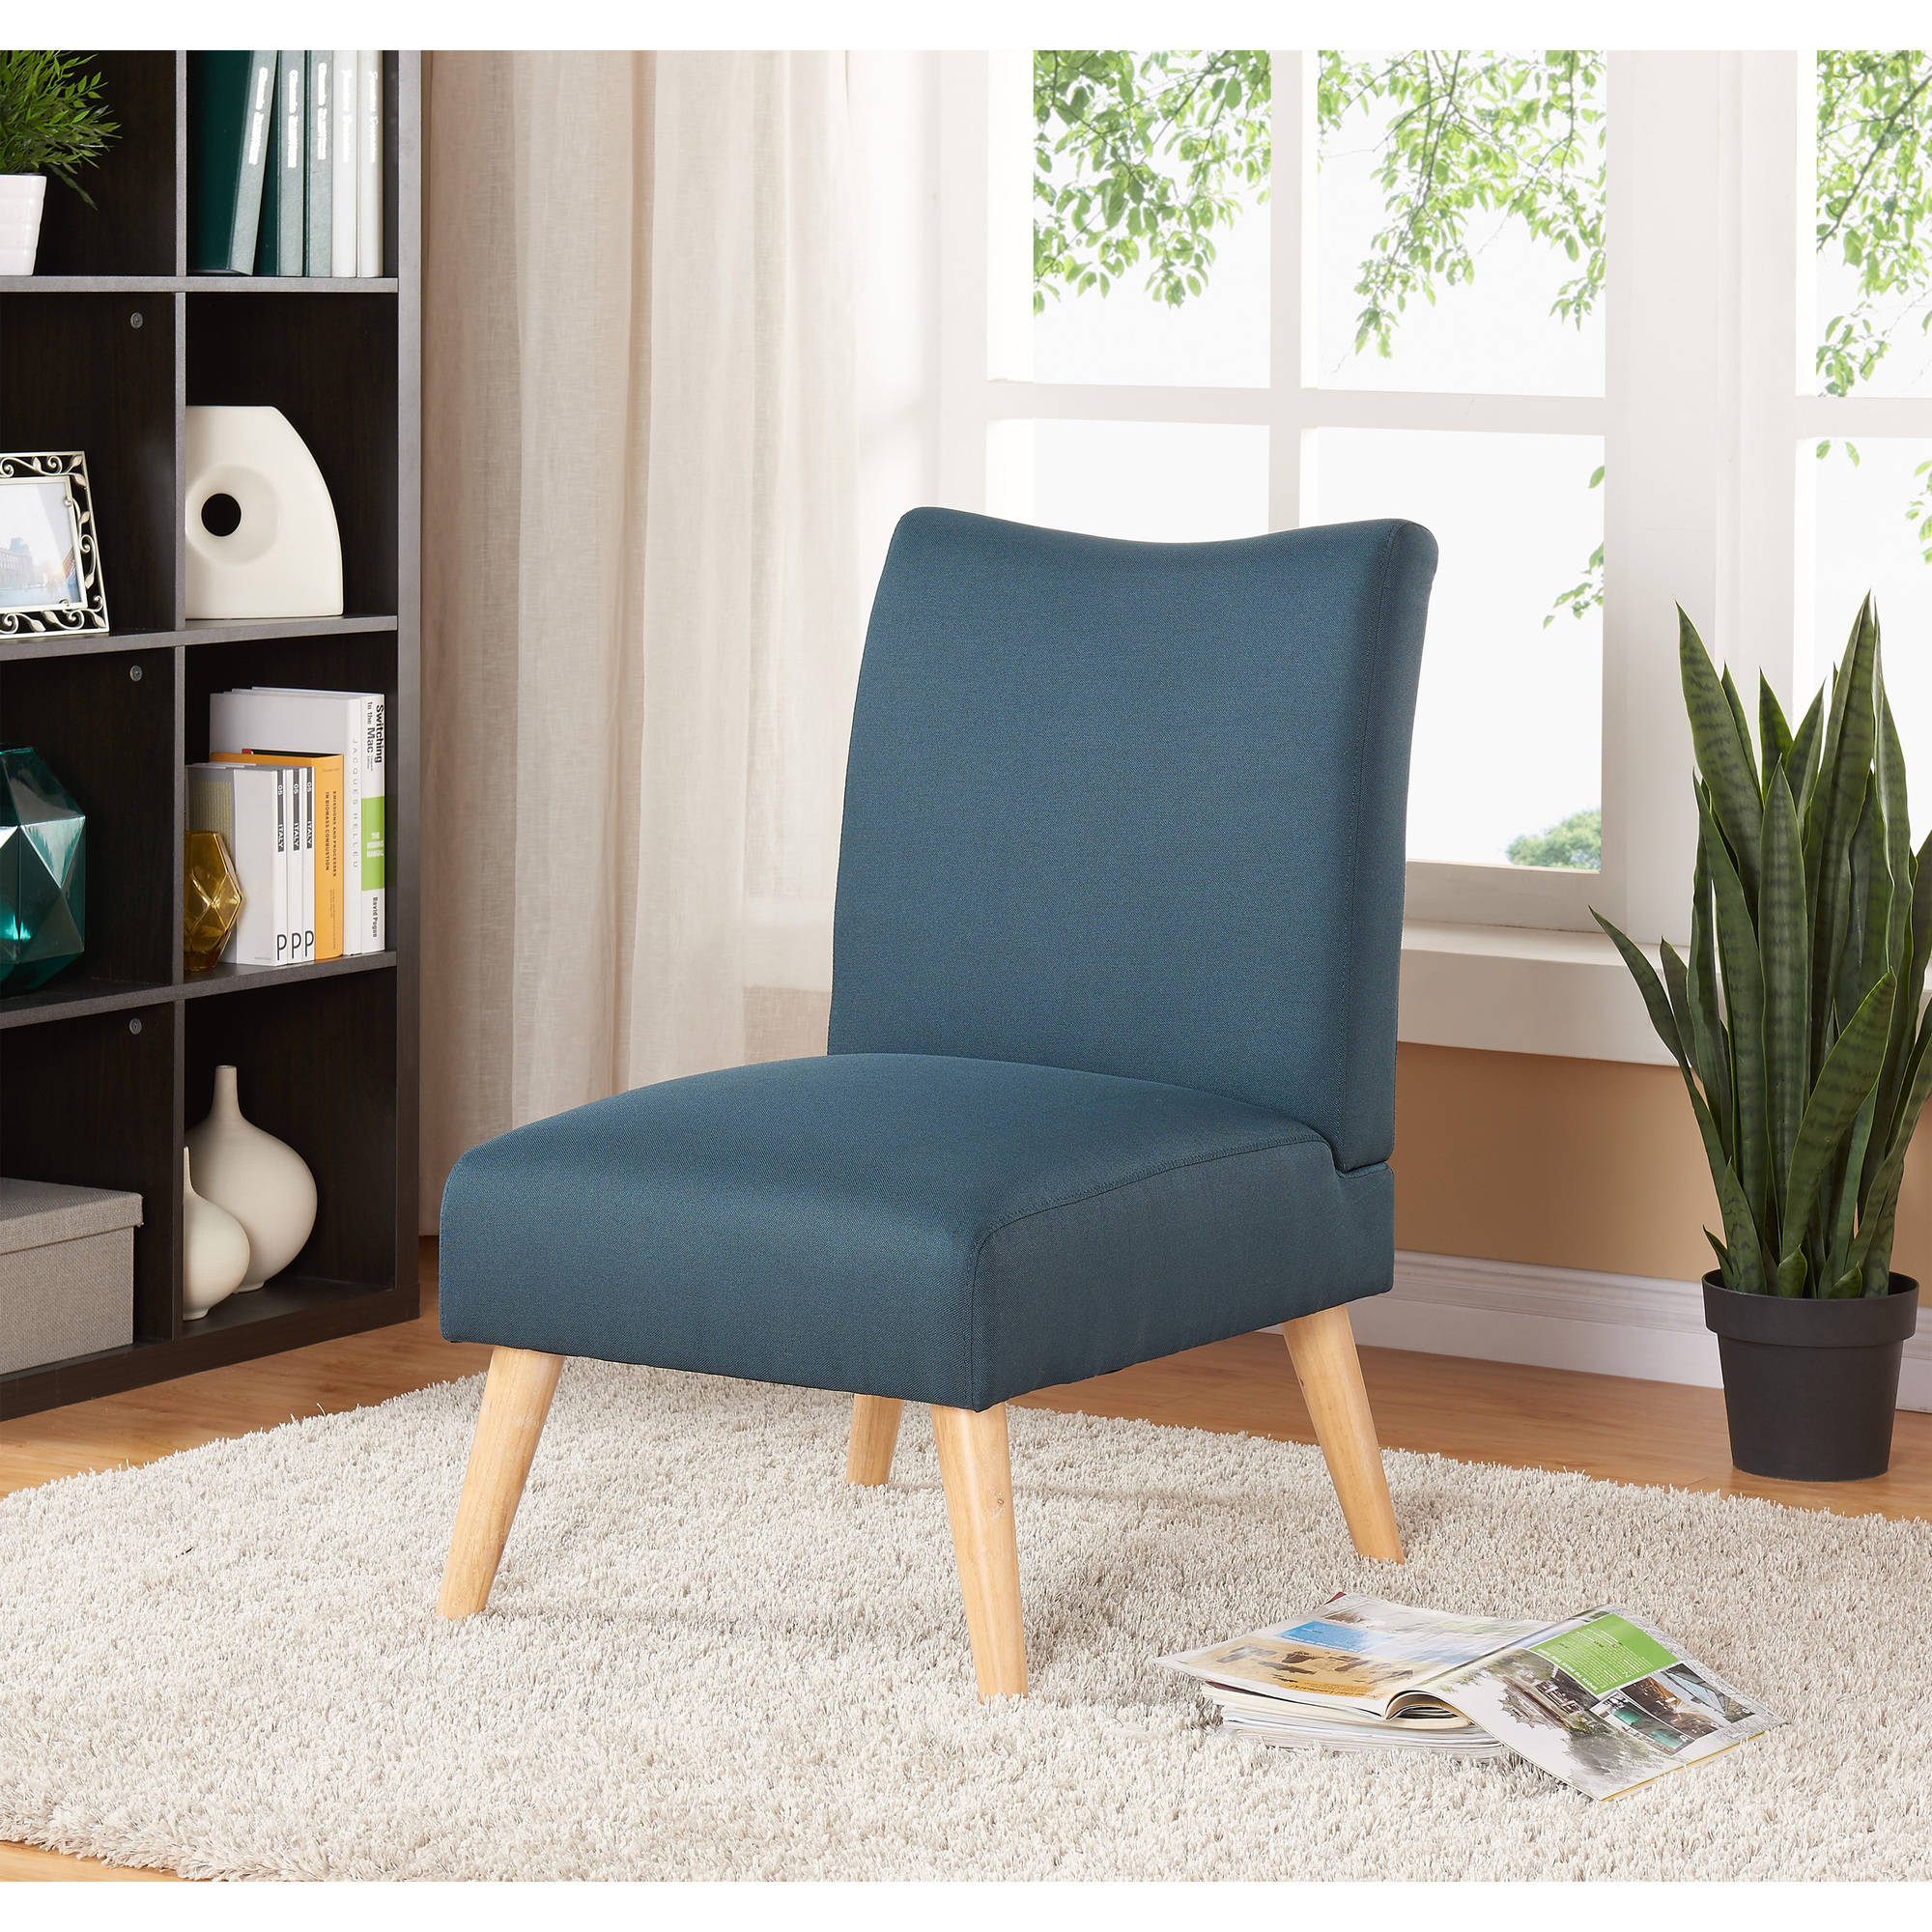 Mainstays Solid Armless Slipper Chair, Multiple Colors In Armless Upholstered Slipper Chairs (View 7 of 15)